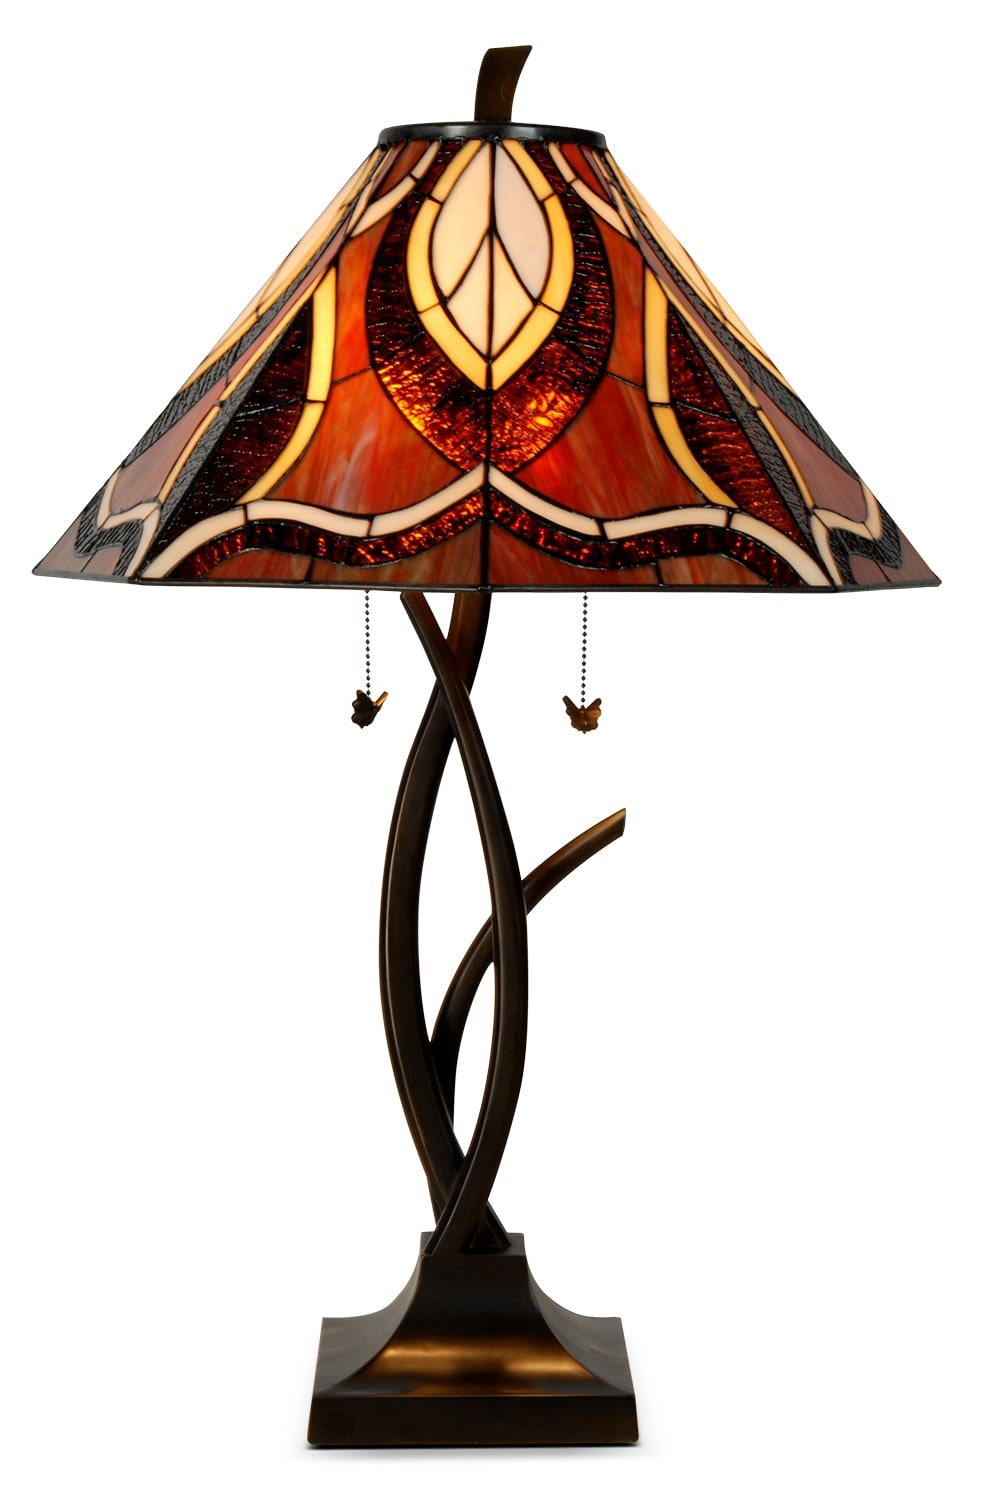 Teslatier Table Lamp with Stained Glass Shade The Brick